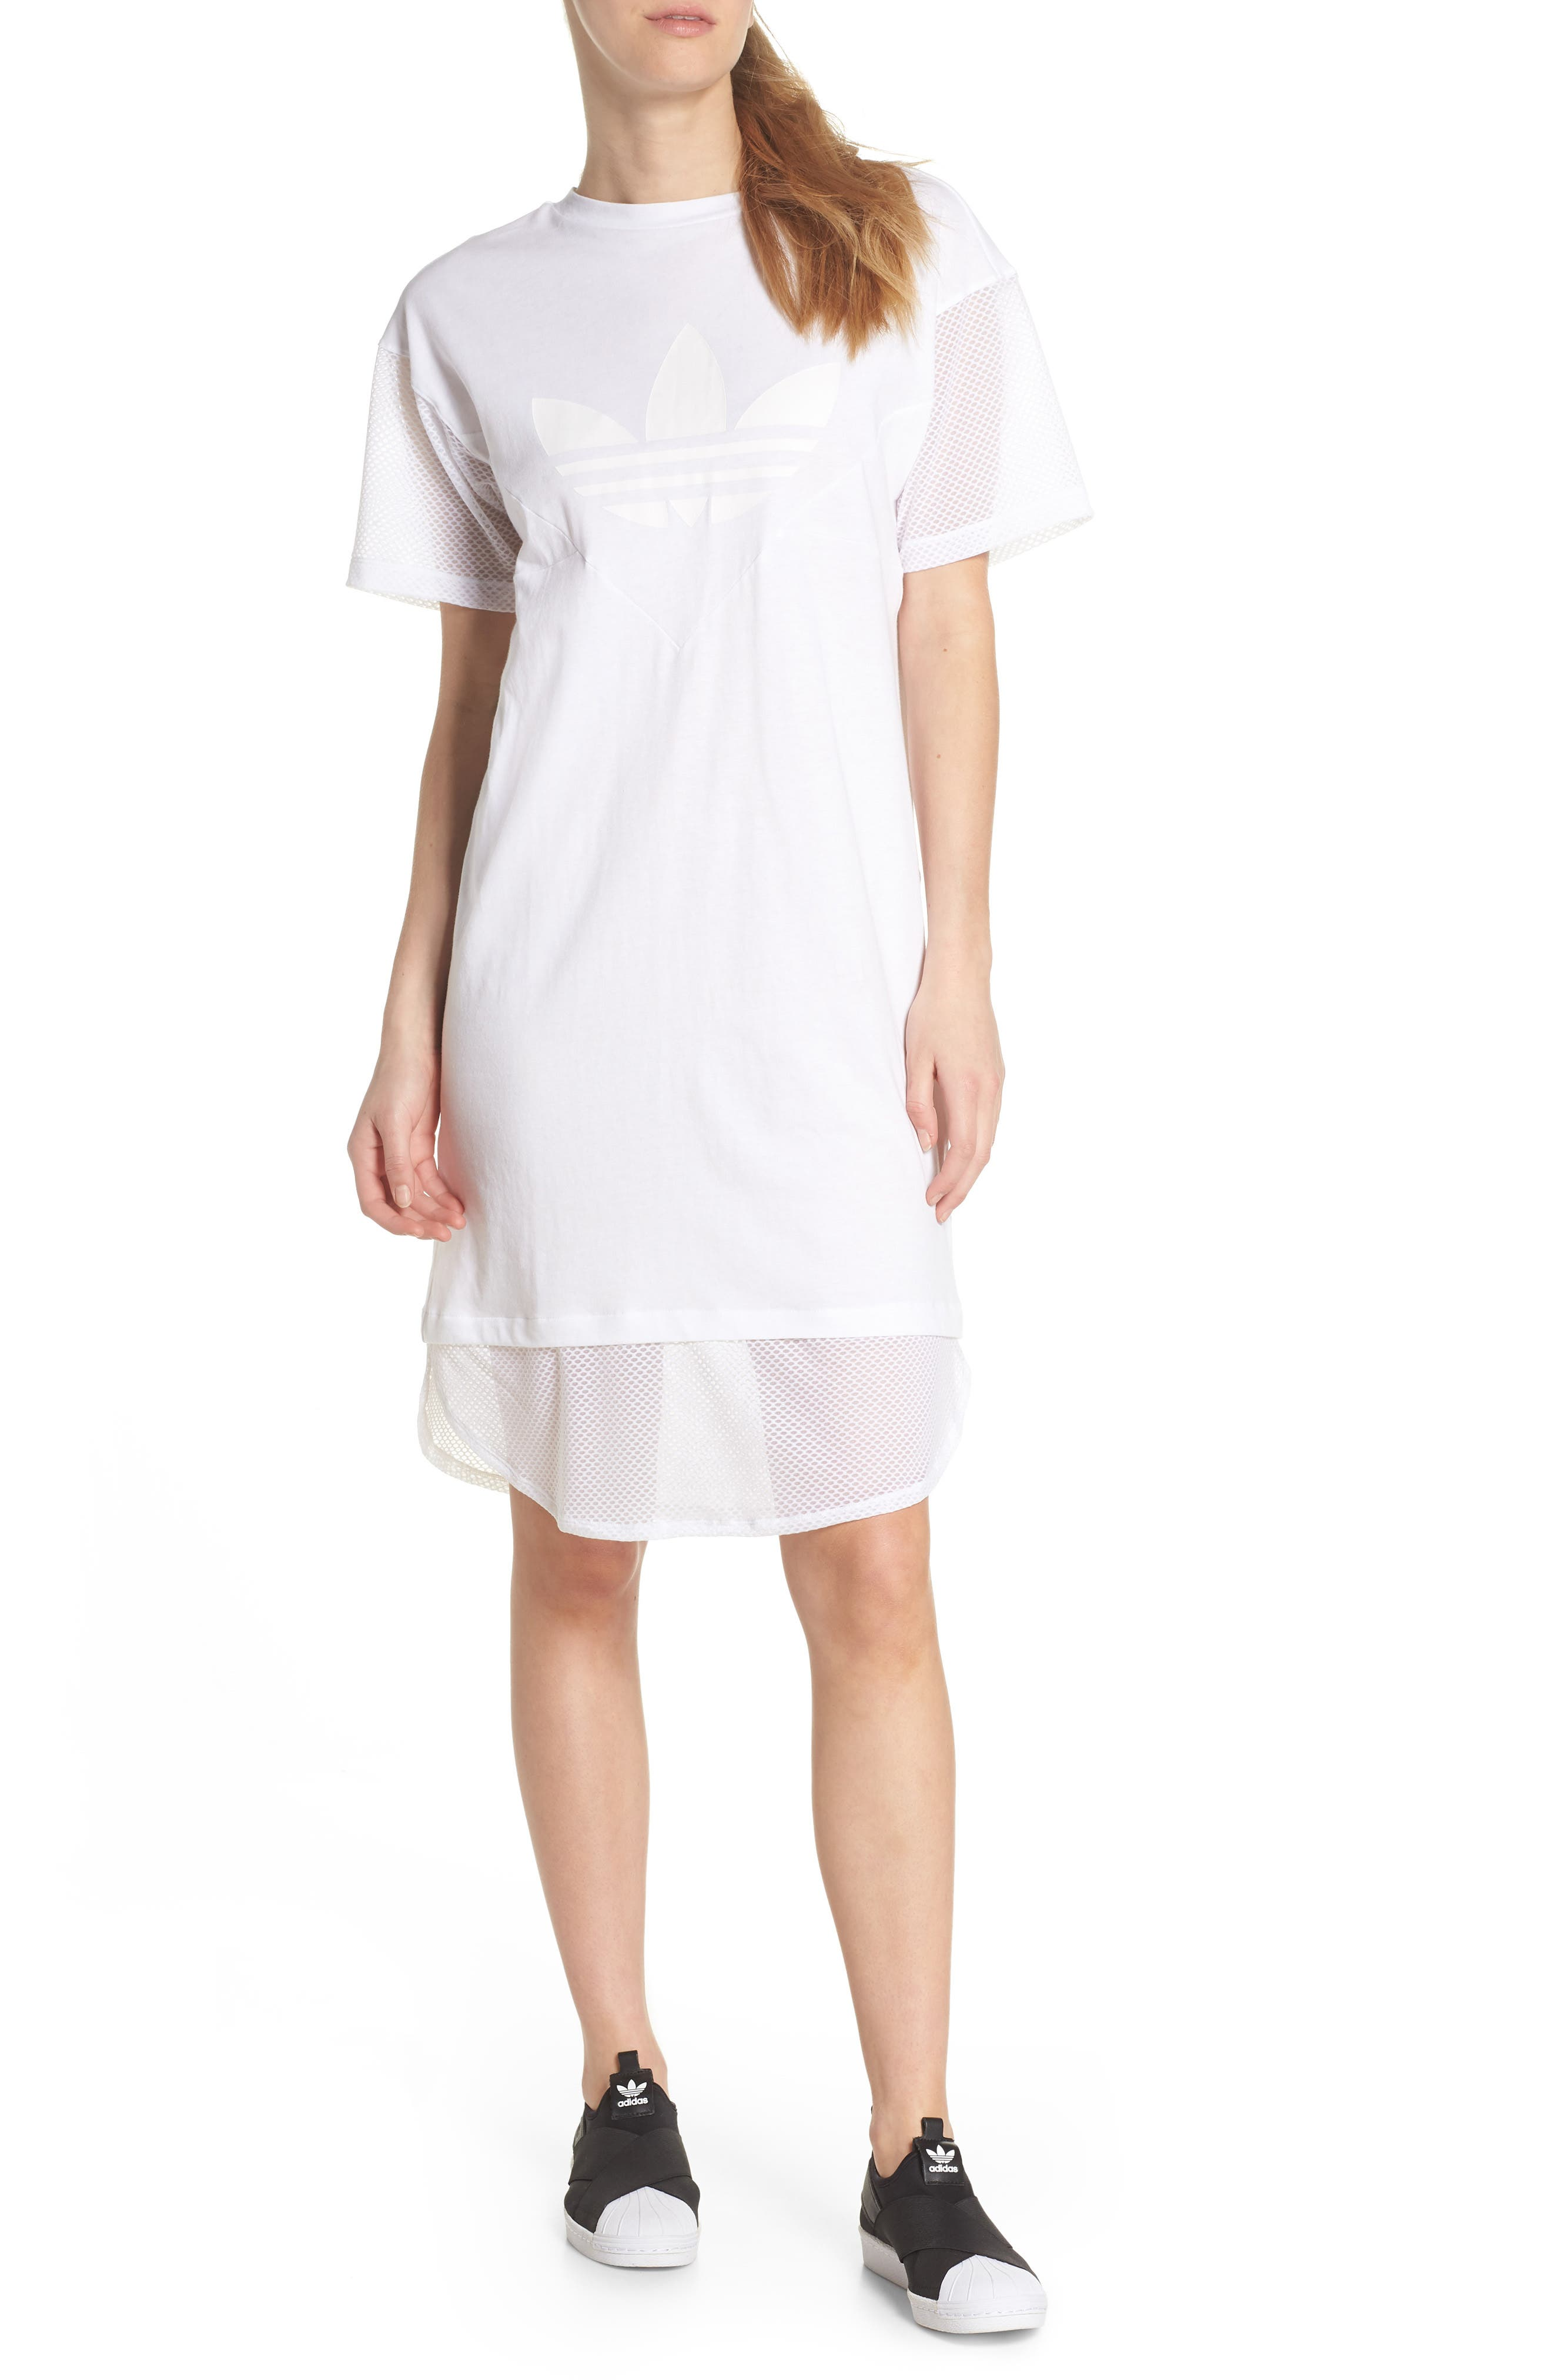 CLRDO T-Shirt Dress,                         Main,                         color, White